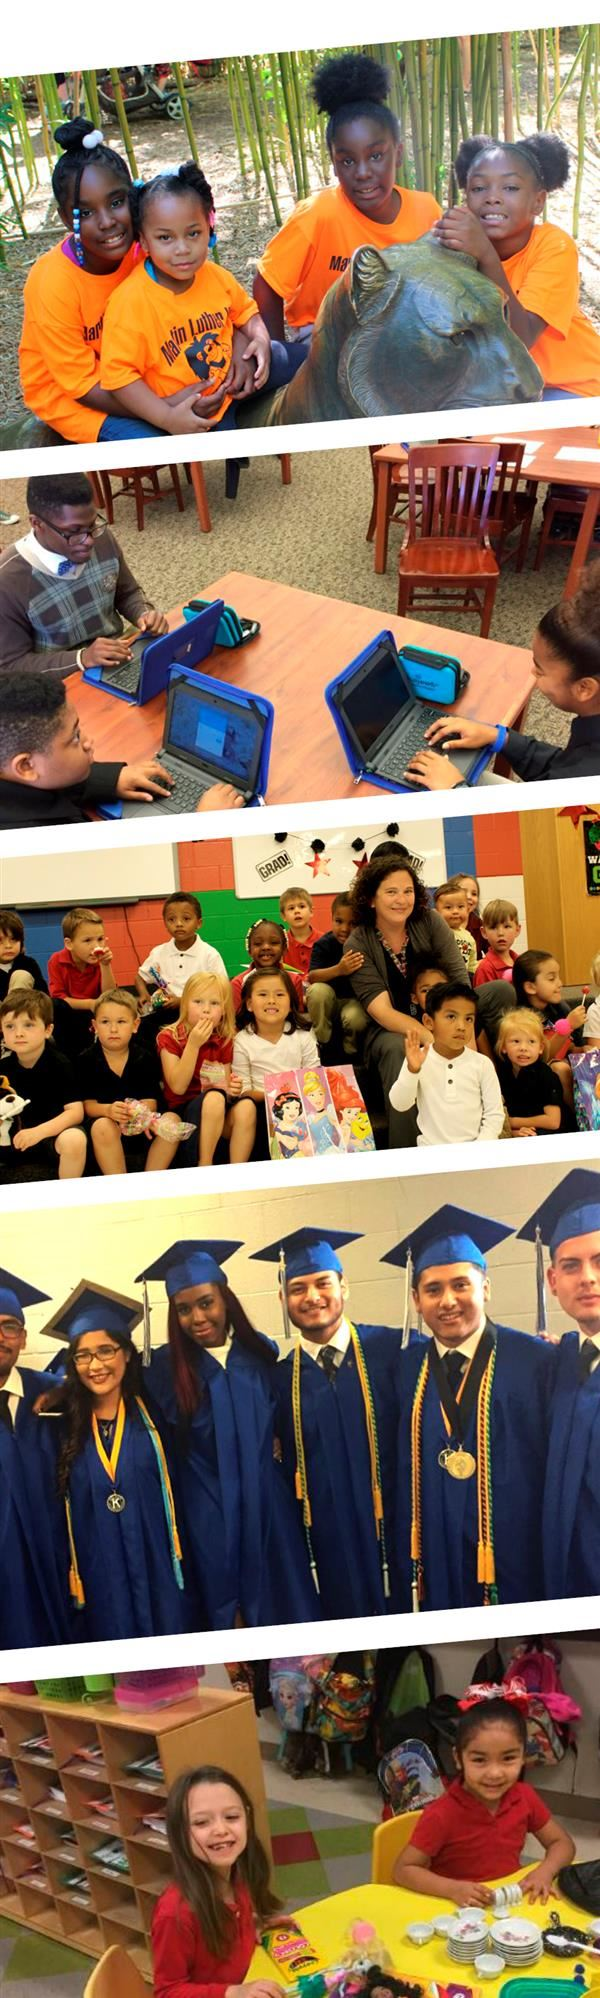 OKCPS Student Images